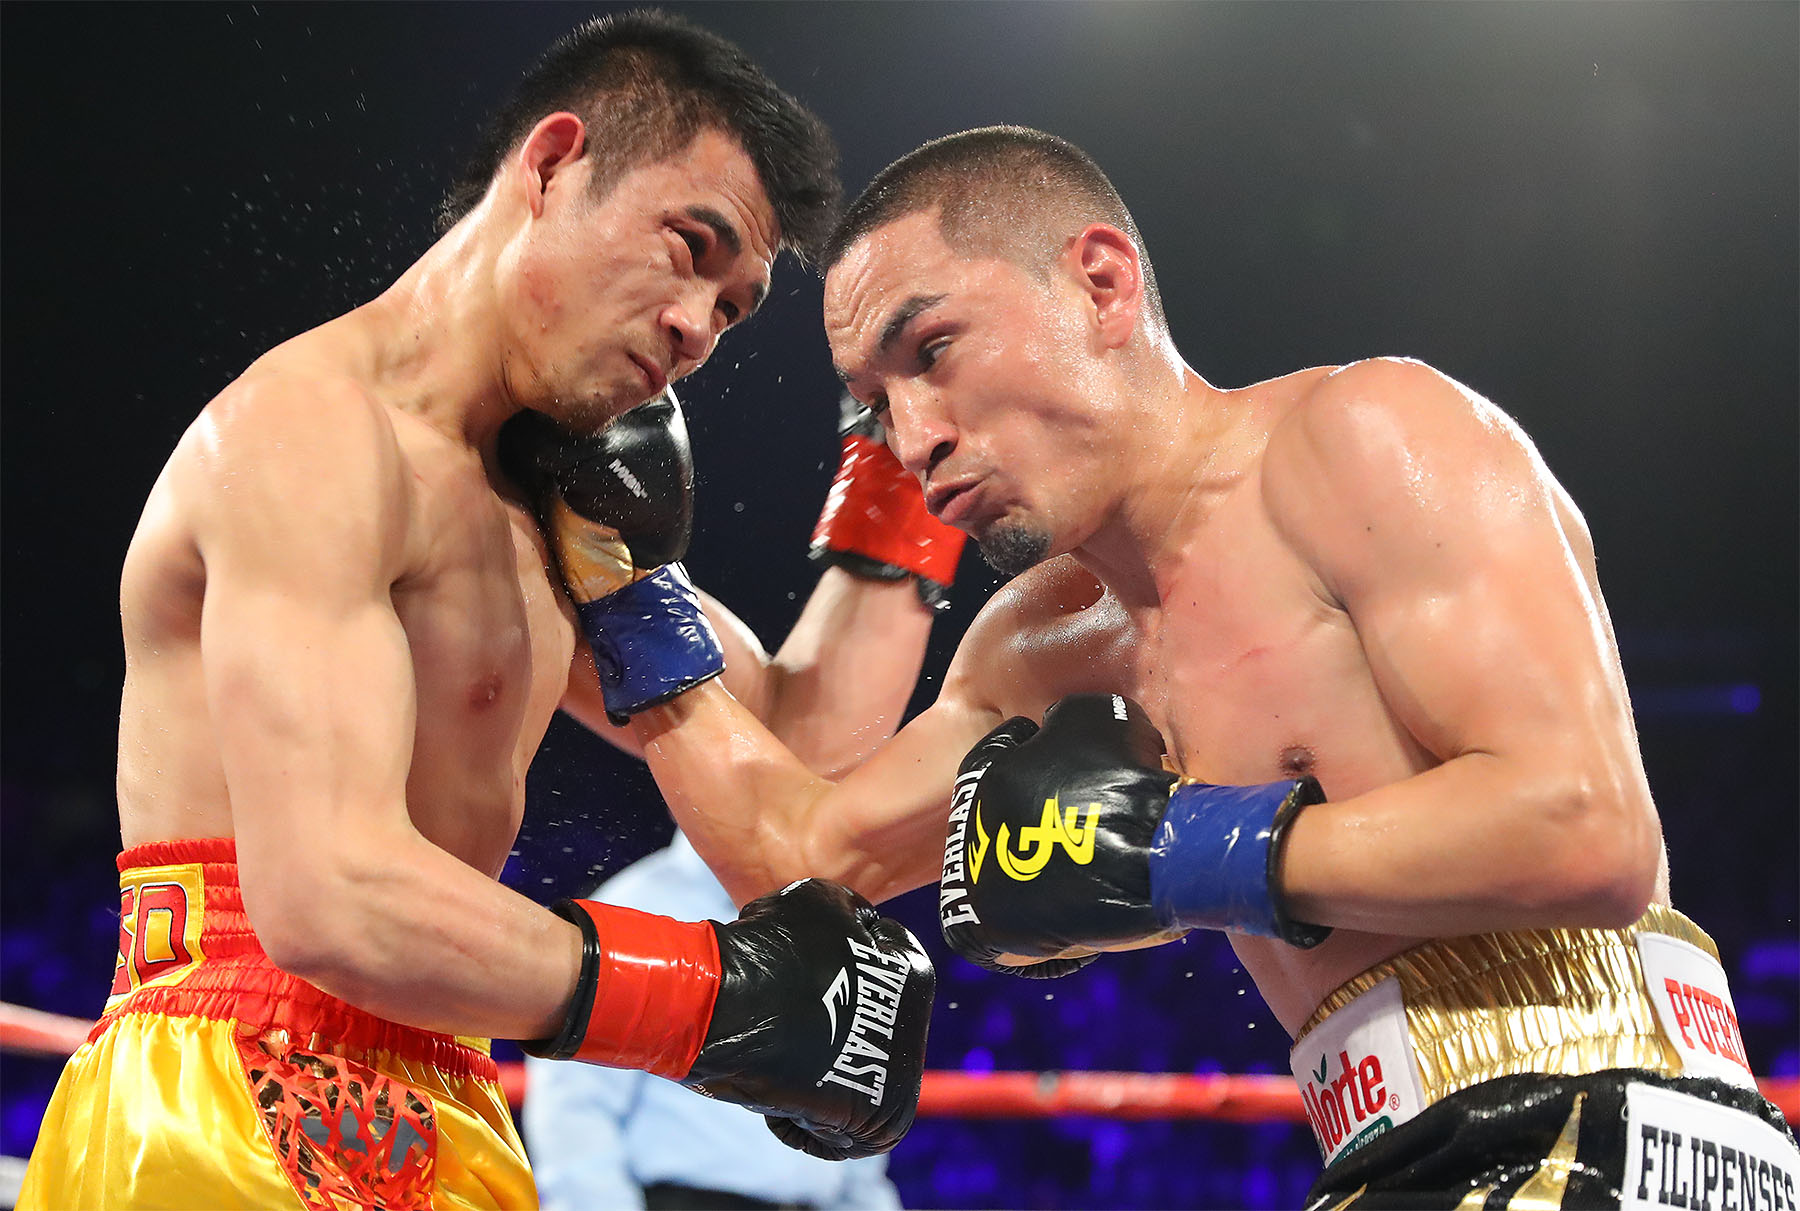 The two men first met in the ring in February 2018 in the second rendition of HBO and Tom Loeffler's 360 Promotions SuperFly series. The bout ended up being one of the best of that year in a fight that could have been scored for either fighter.